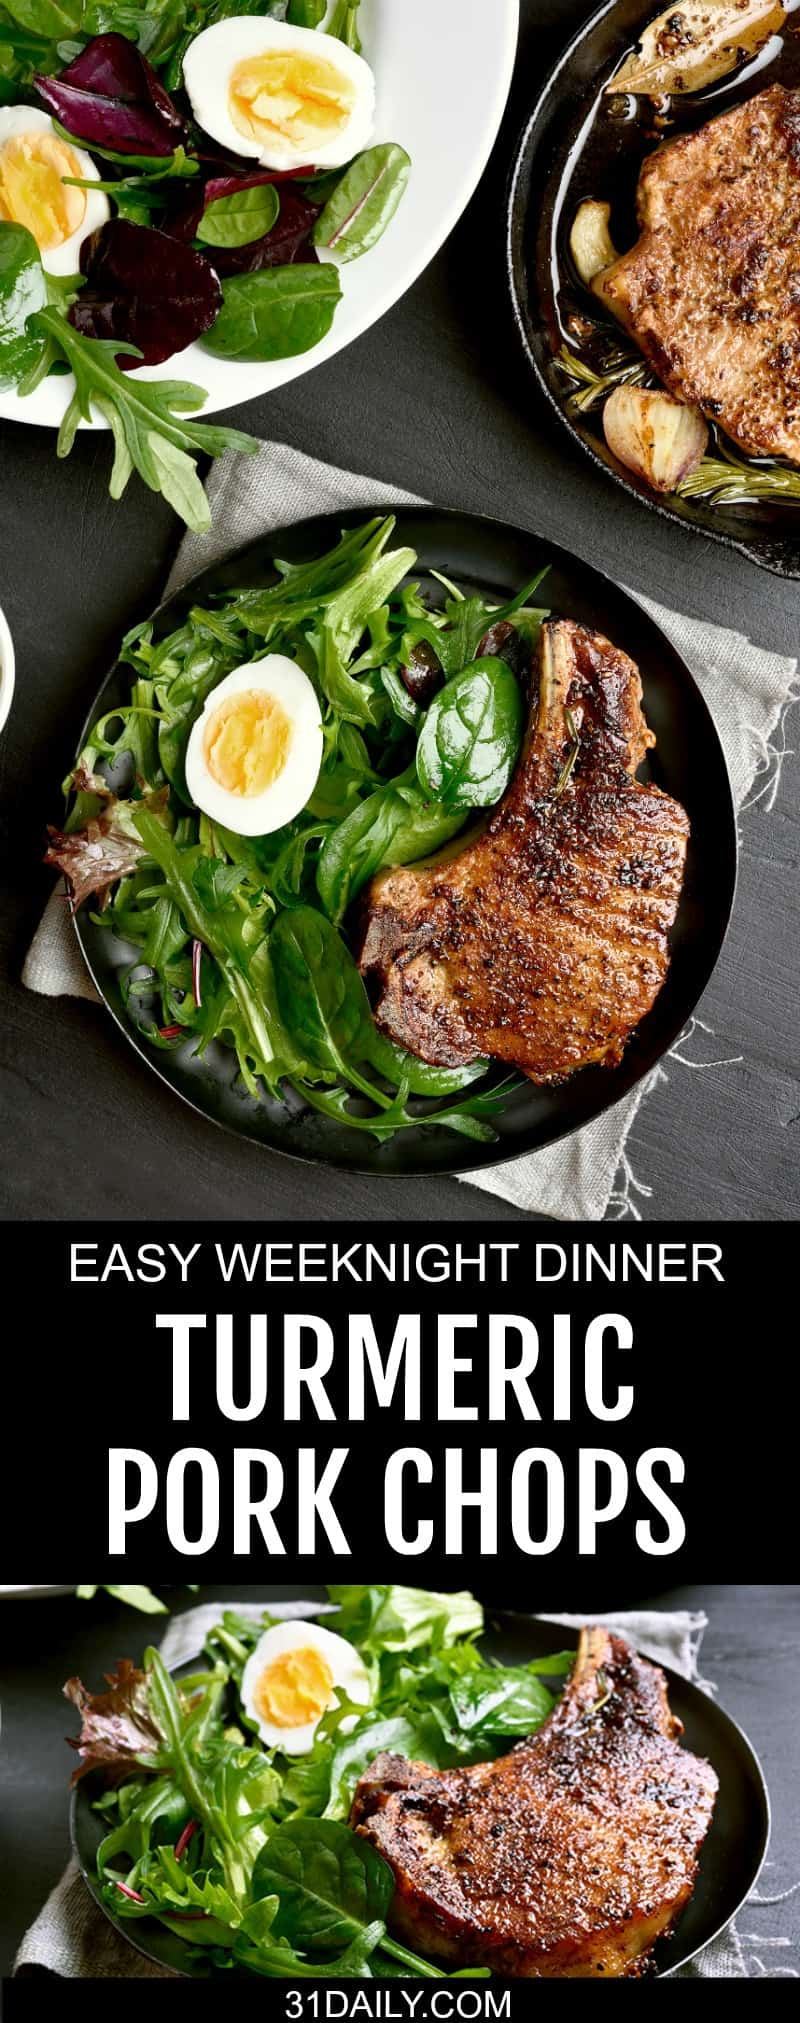 Turmeric Pork Chops for an Easy Weeknight Meal | 31Daily.com